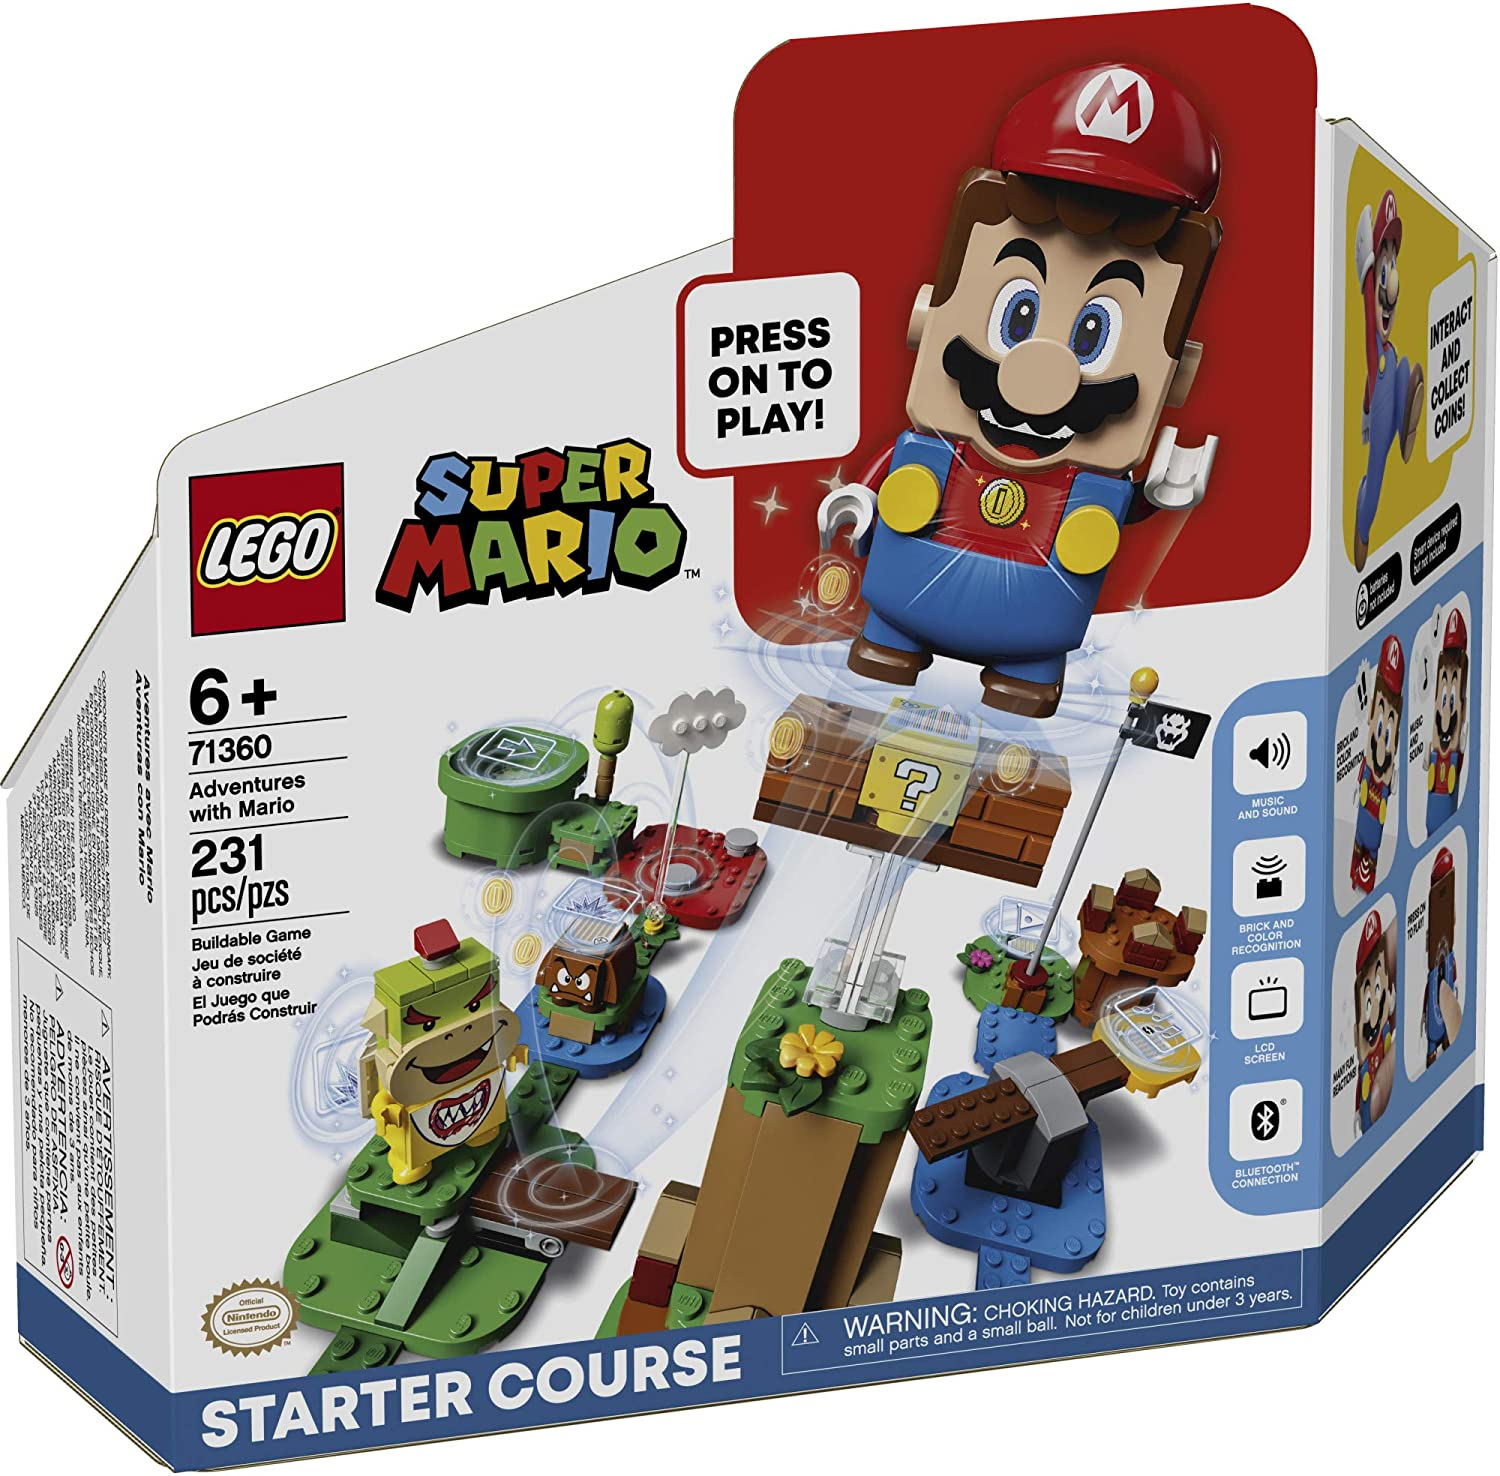 LEGO Super Mario Adventures with Mario Starter Course 71360 Building Kit, New 2020 (231 Pieces)